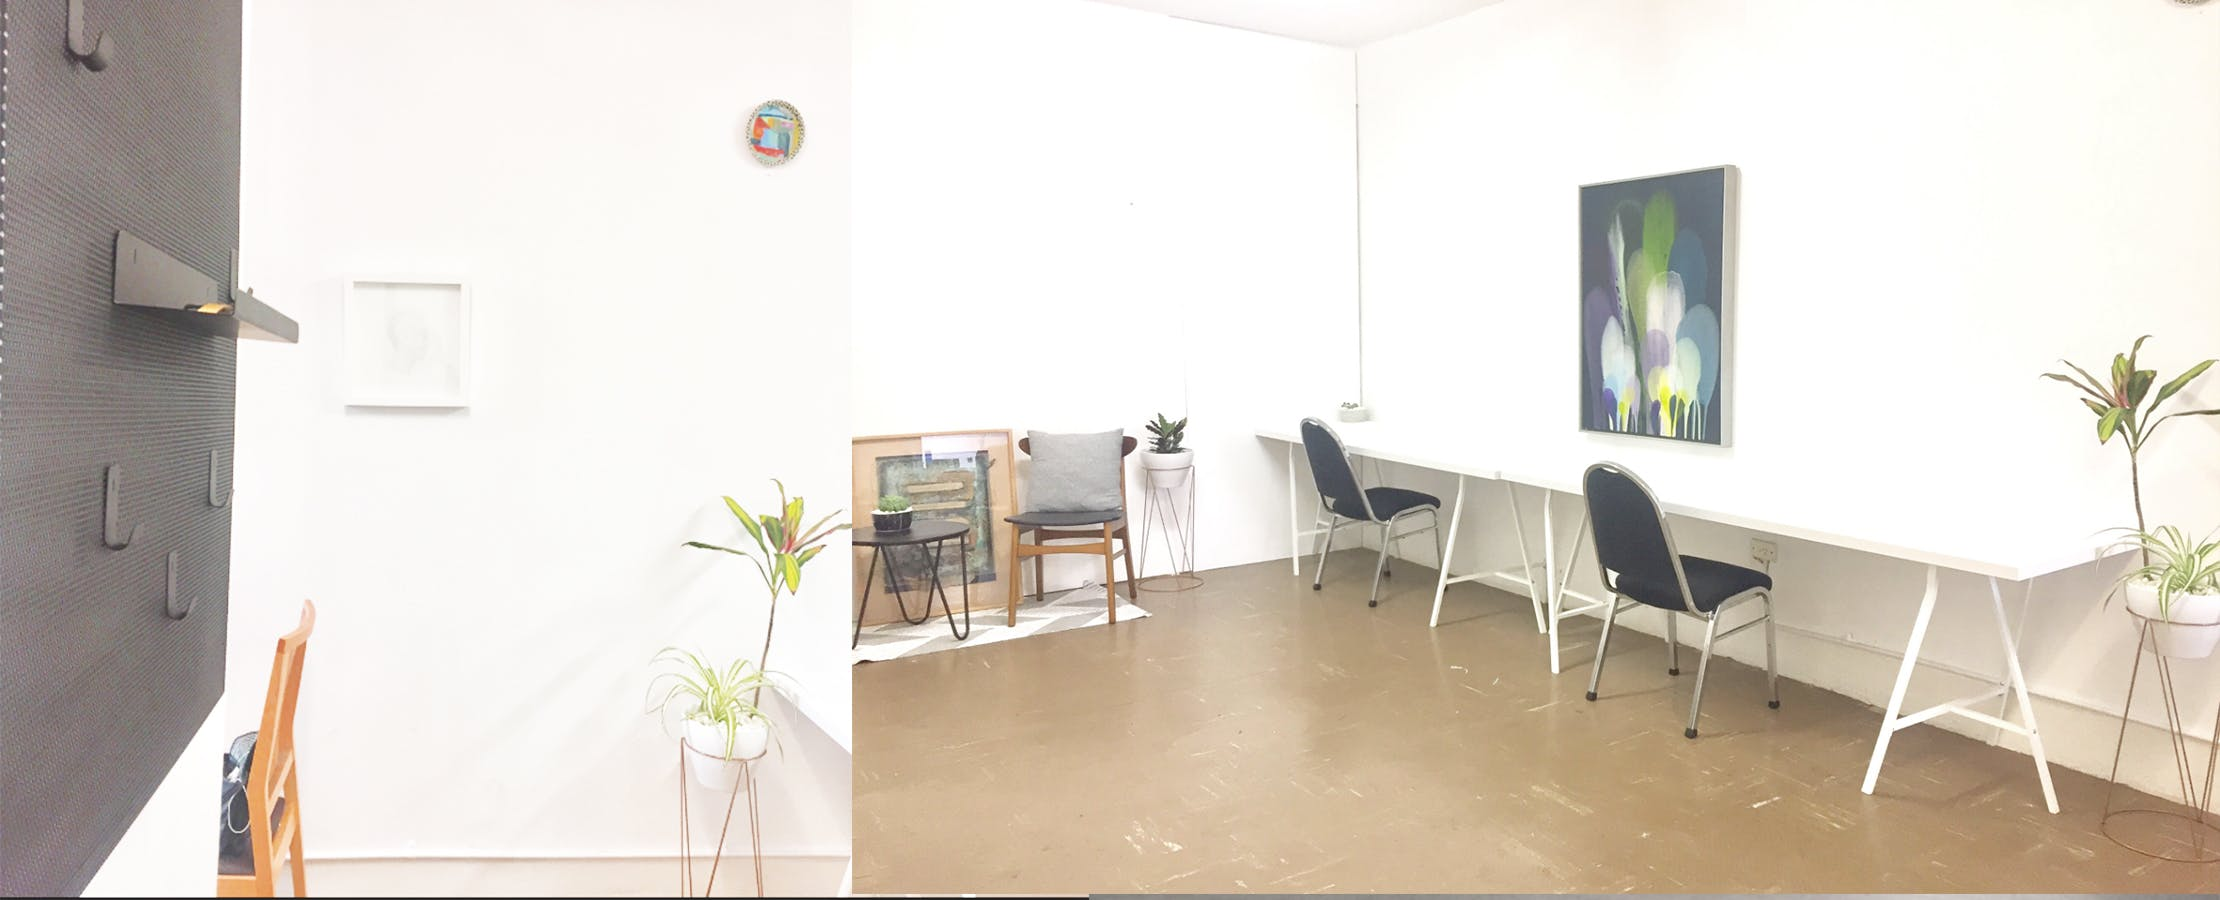 Private office at 220 Creative Space, image 1